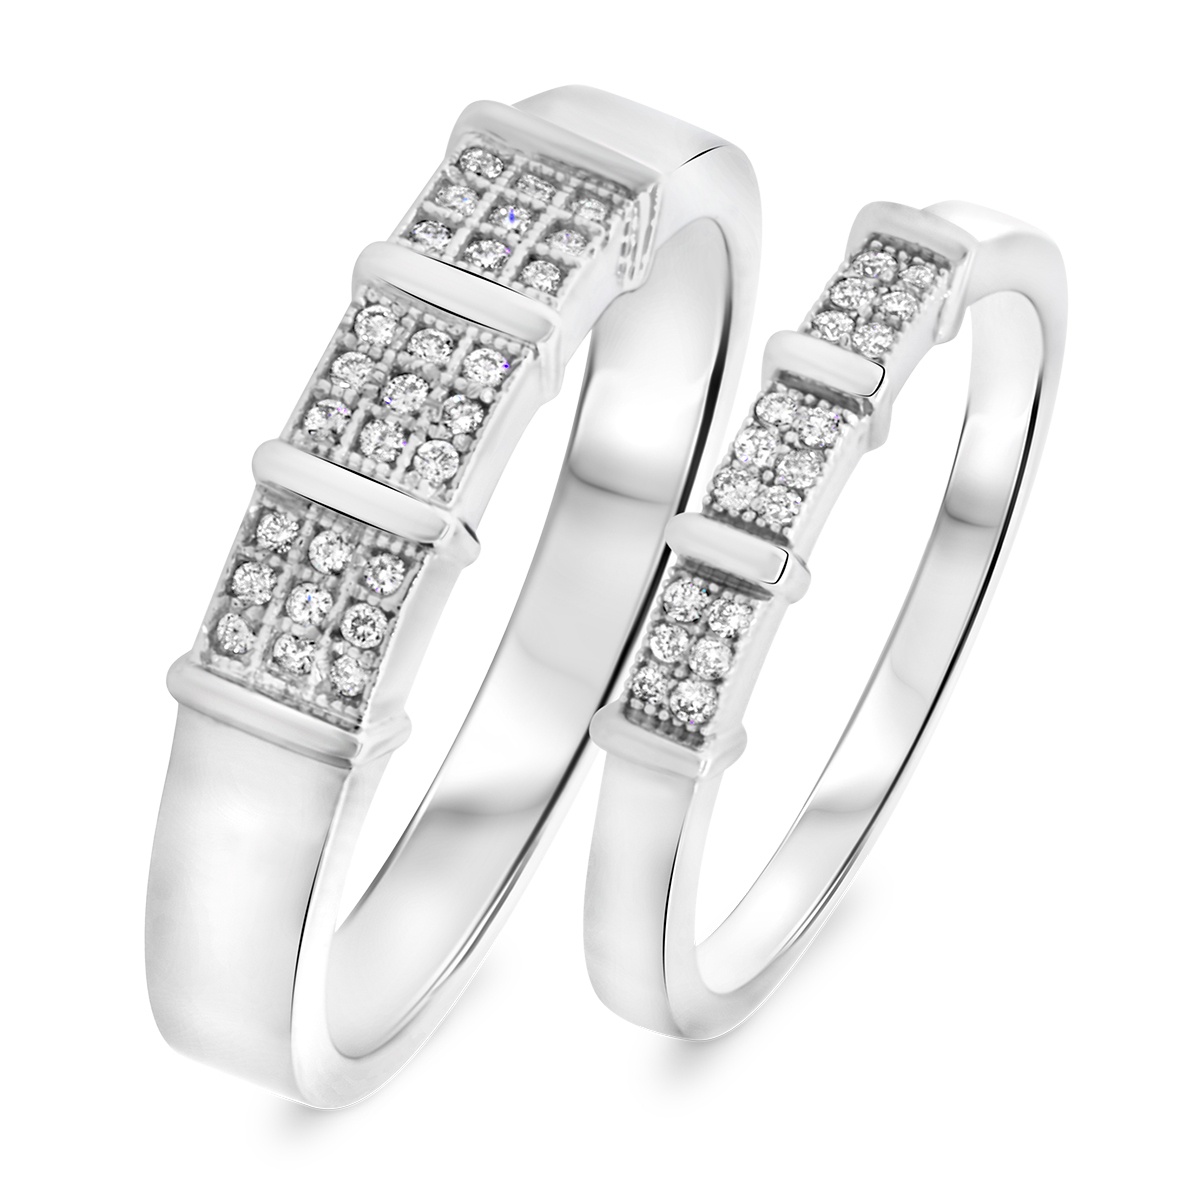 wedding ring sets, matching ring sets